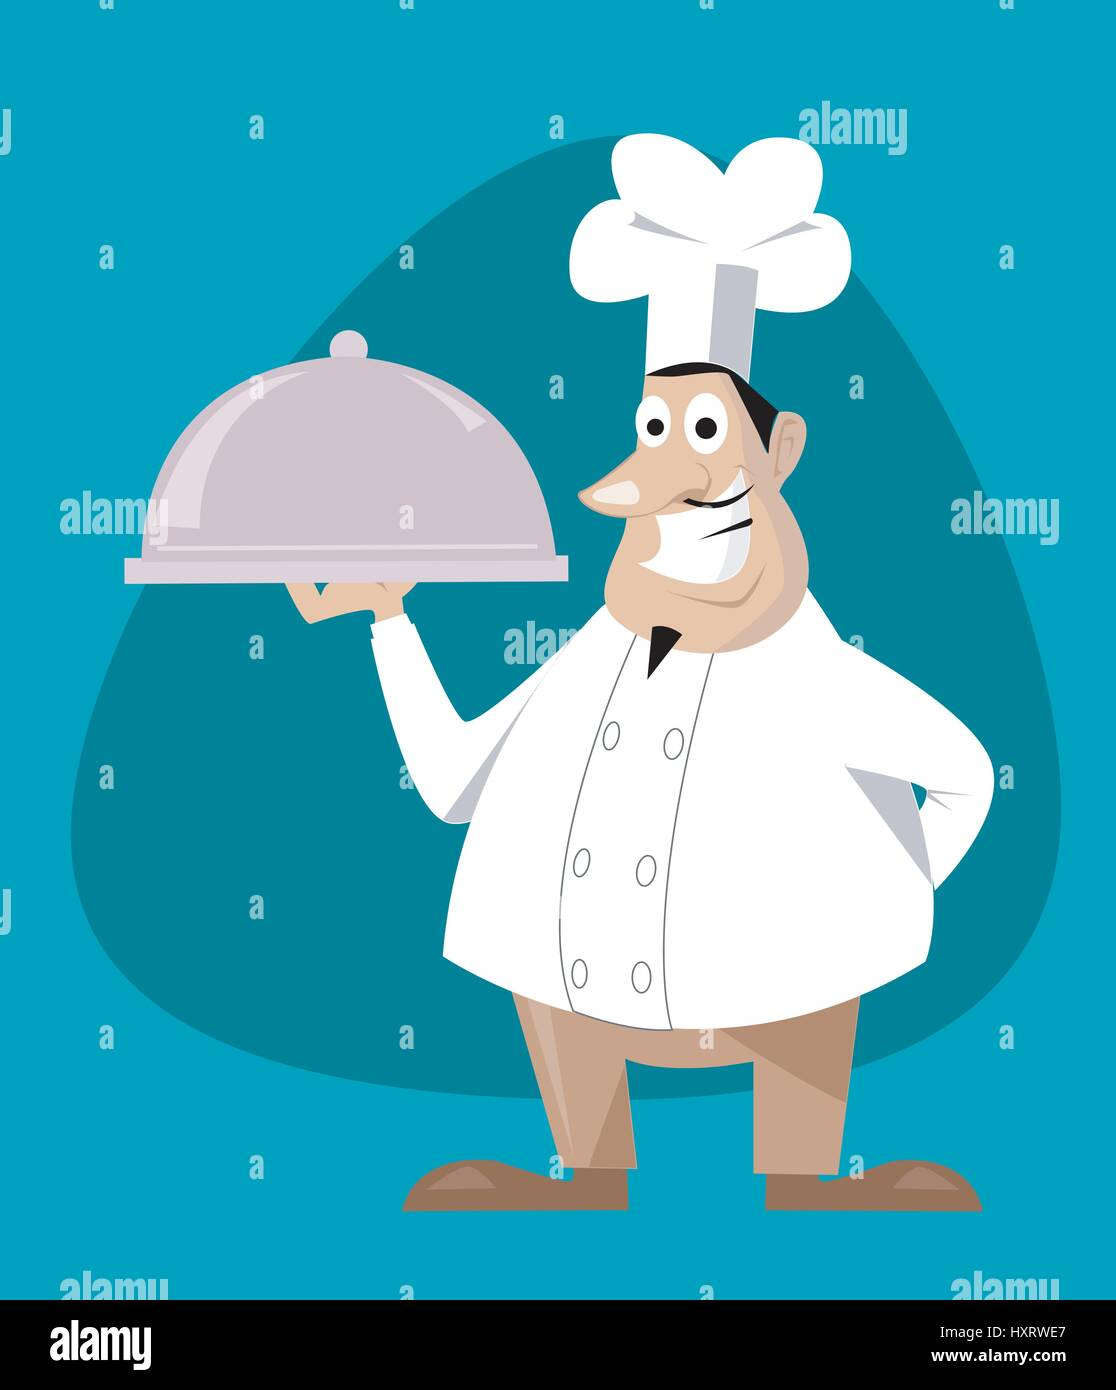 chef vector illustration Stock Vector Art   Illustration b64156ffb879